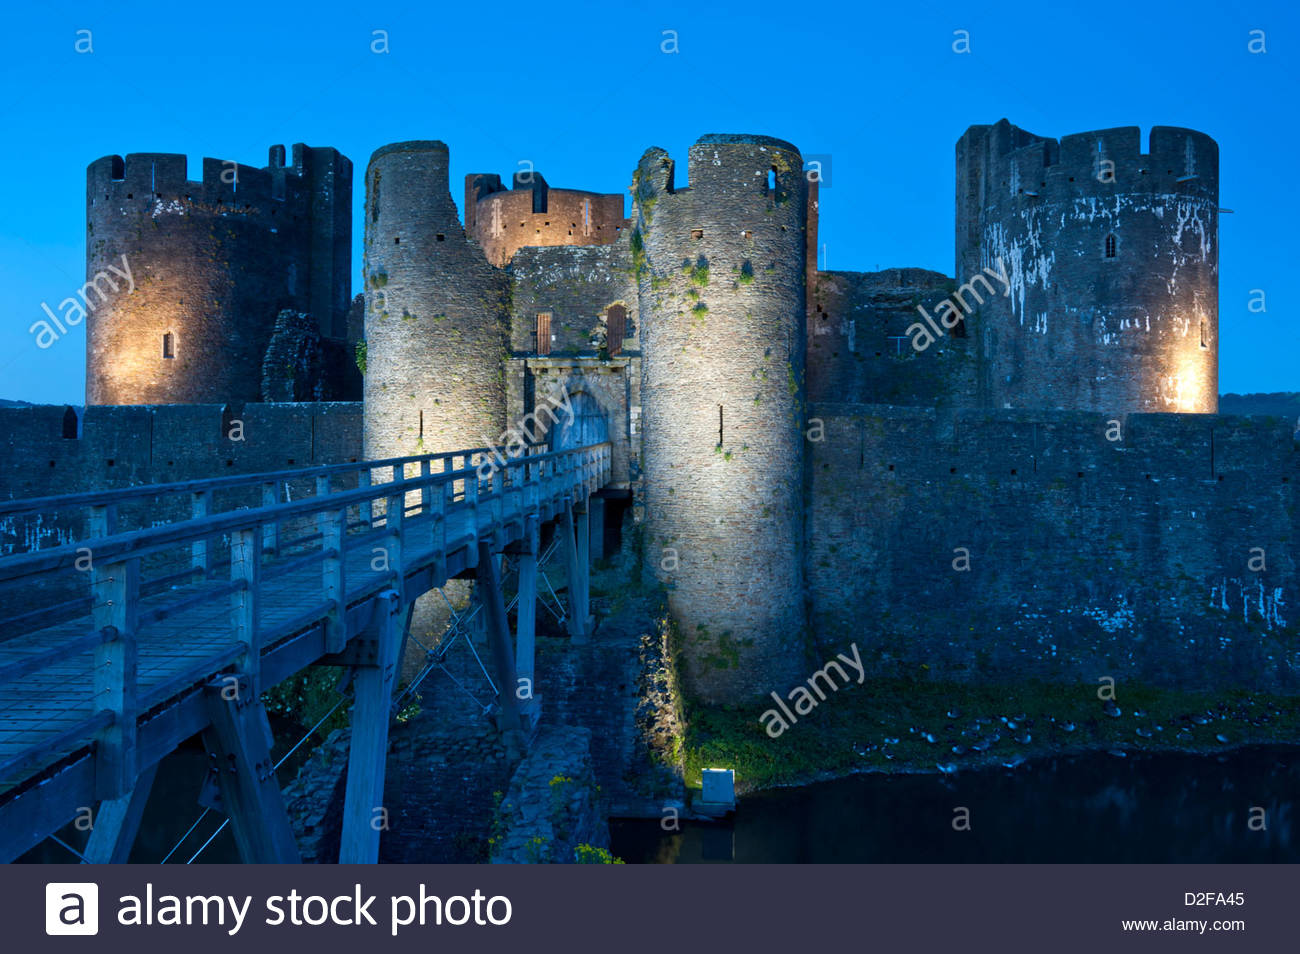 Caerphilly Castle South Wales, Caerphilly Castle at Night, Caerphilly, South Wales, UK Stock ...